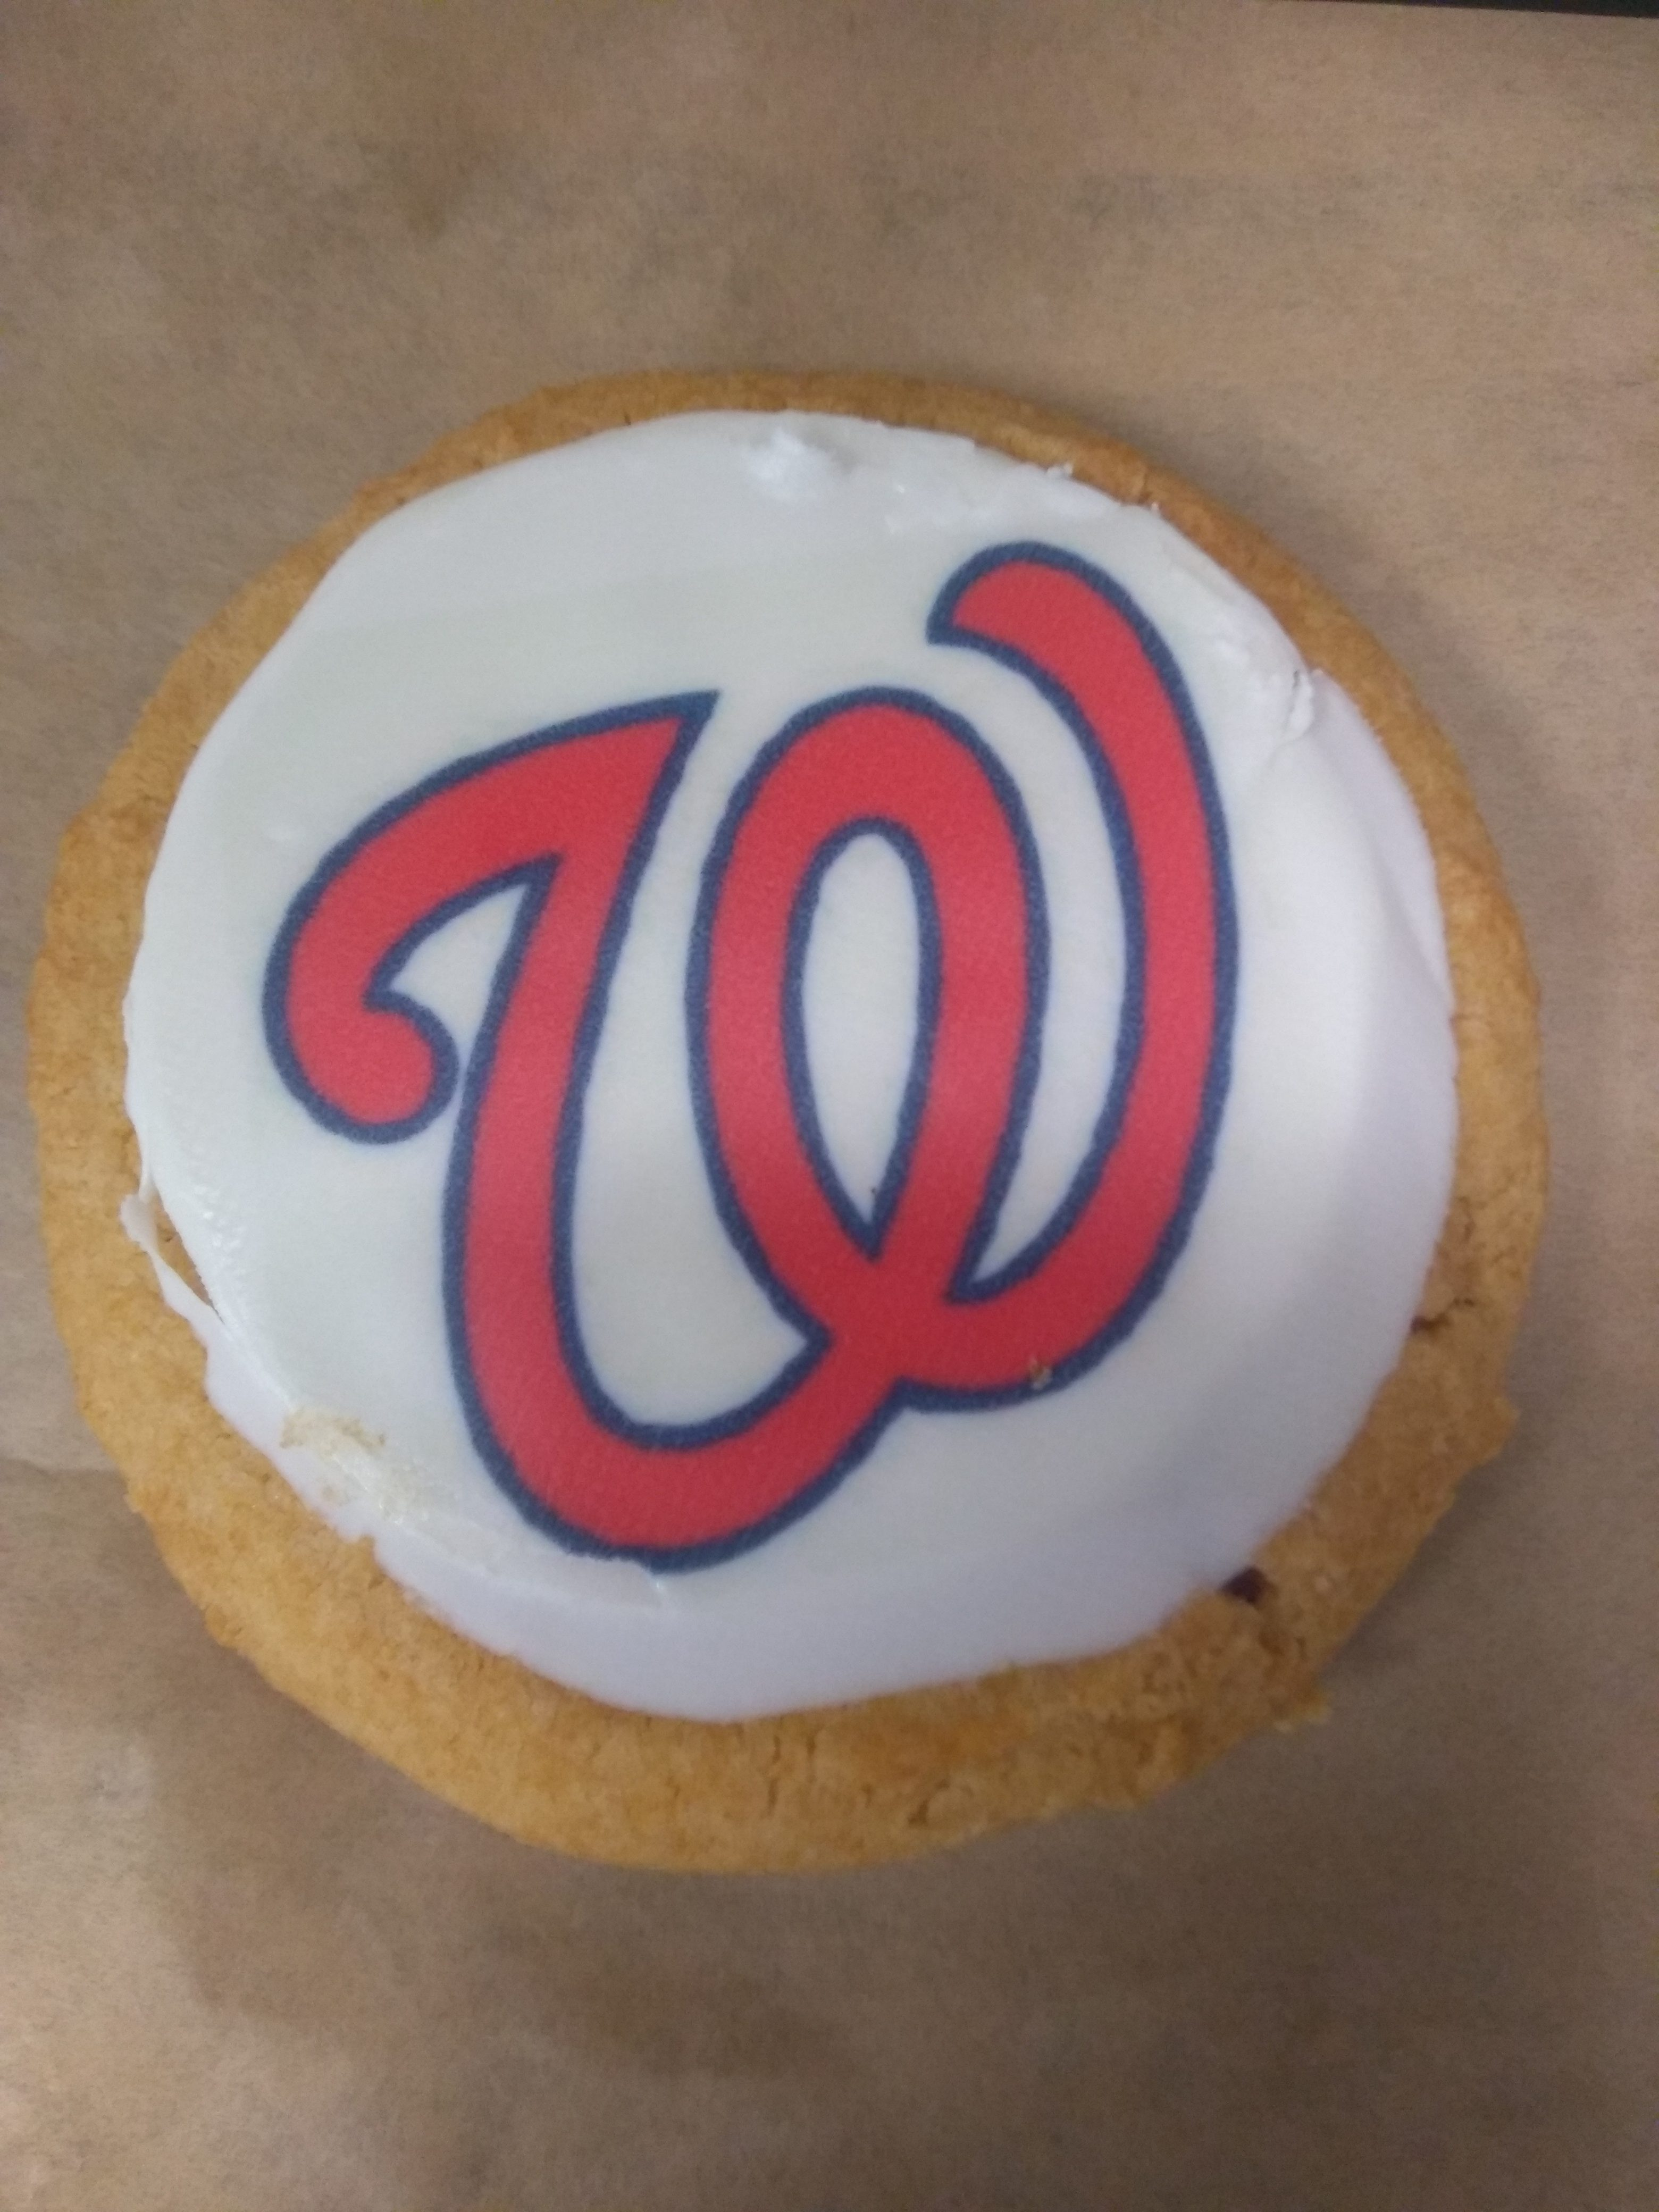 The Dirksen cafeteria has been featuring cookies with the Nationals logo. (Niels Lesniewski/CQ Roll Call)